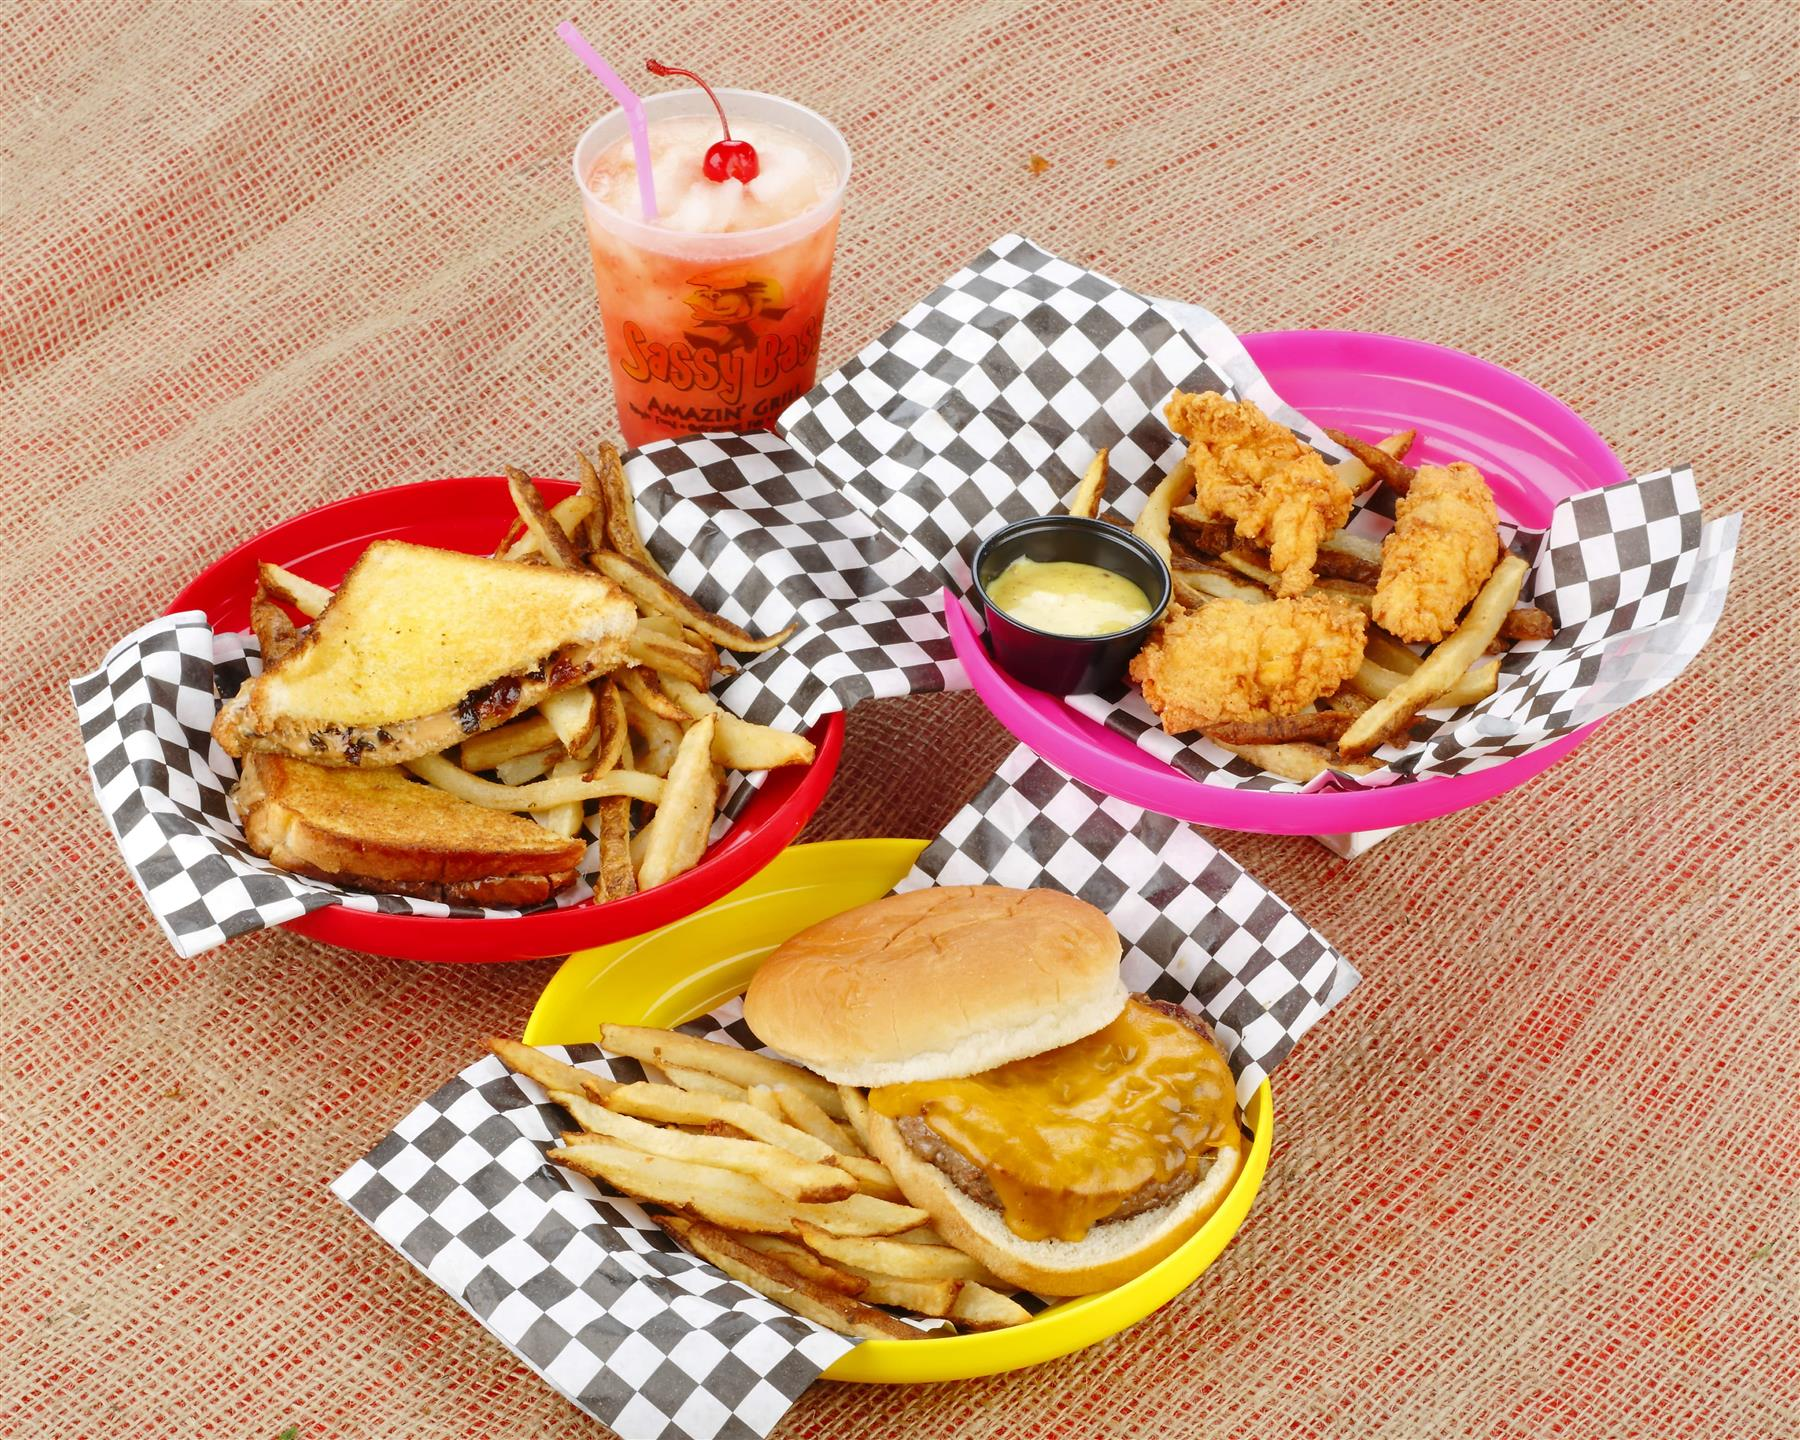 Assorted kids meals in baskets on a wood table with an iced juice drink